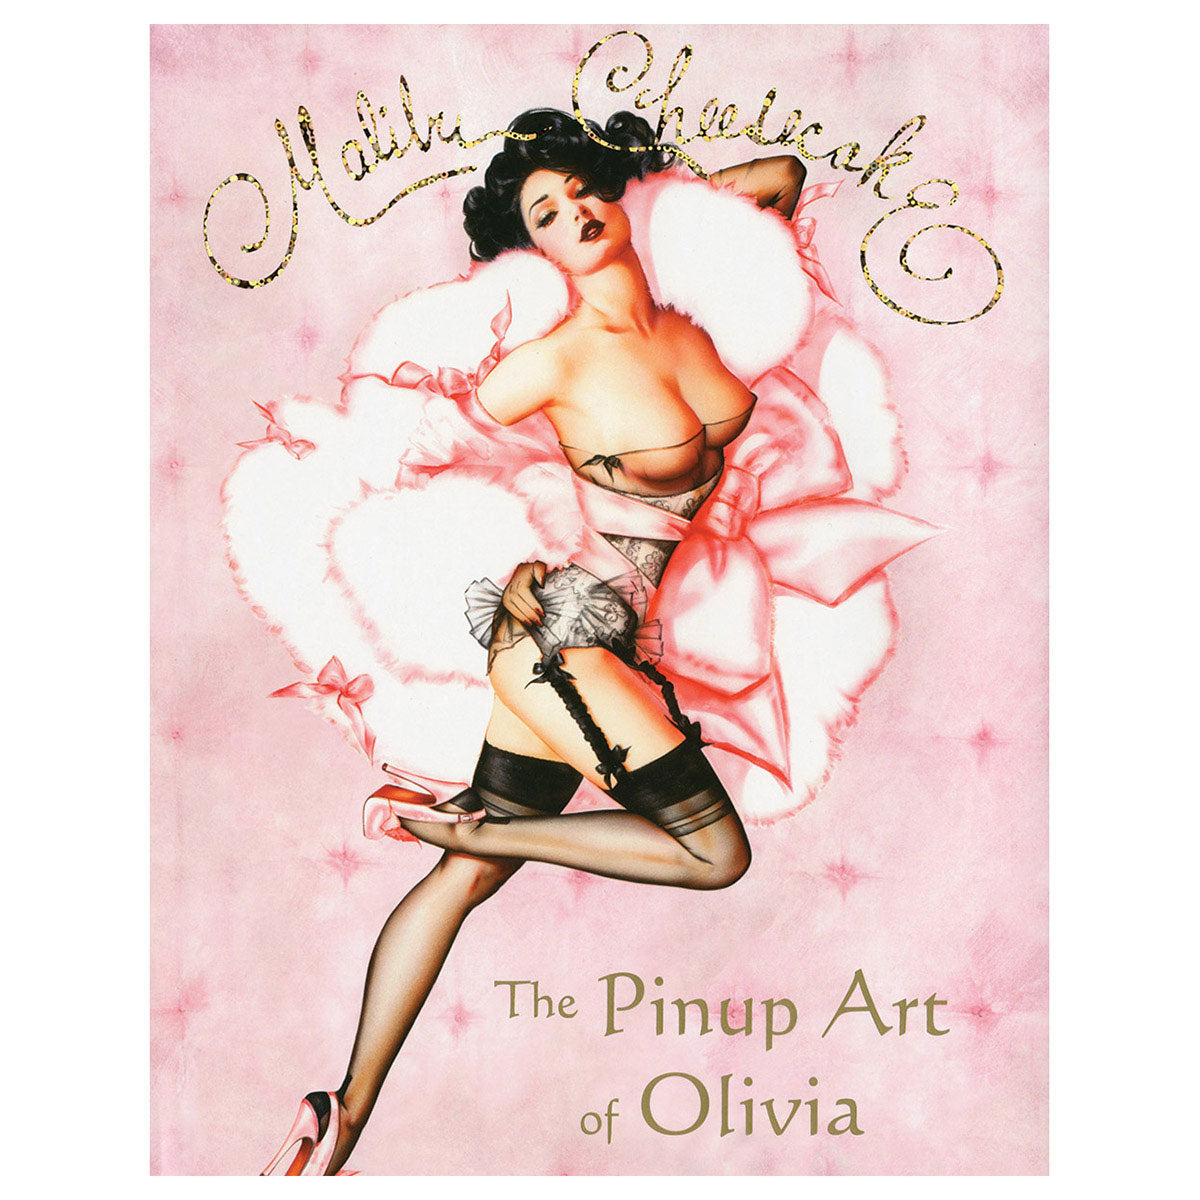 Malibu Cheesecake: The Pinup Art of Olivia -ozone Productions